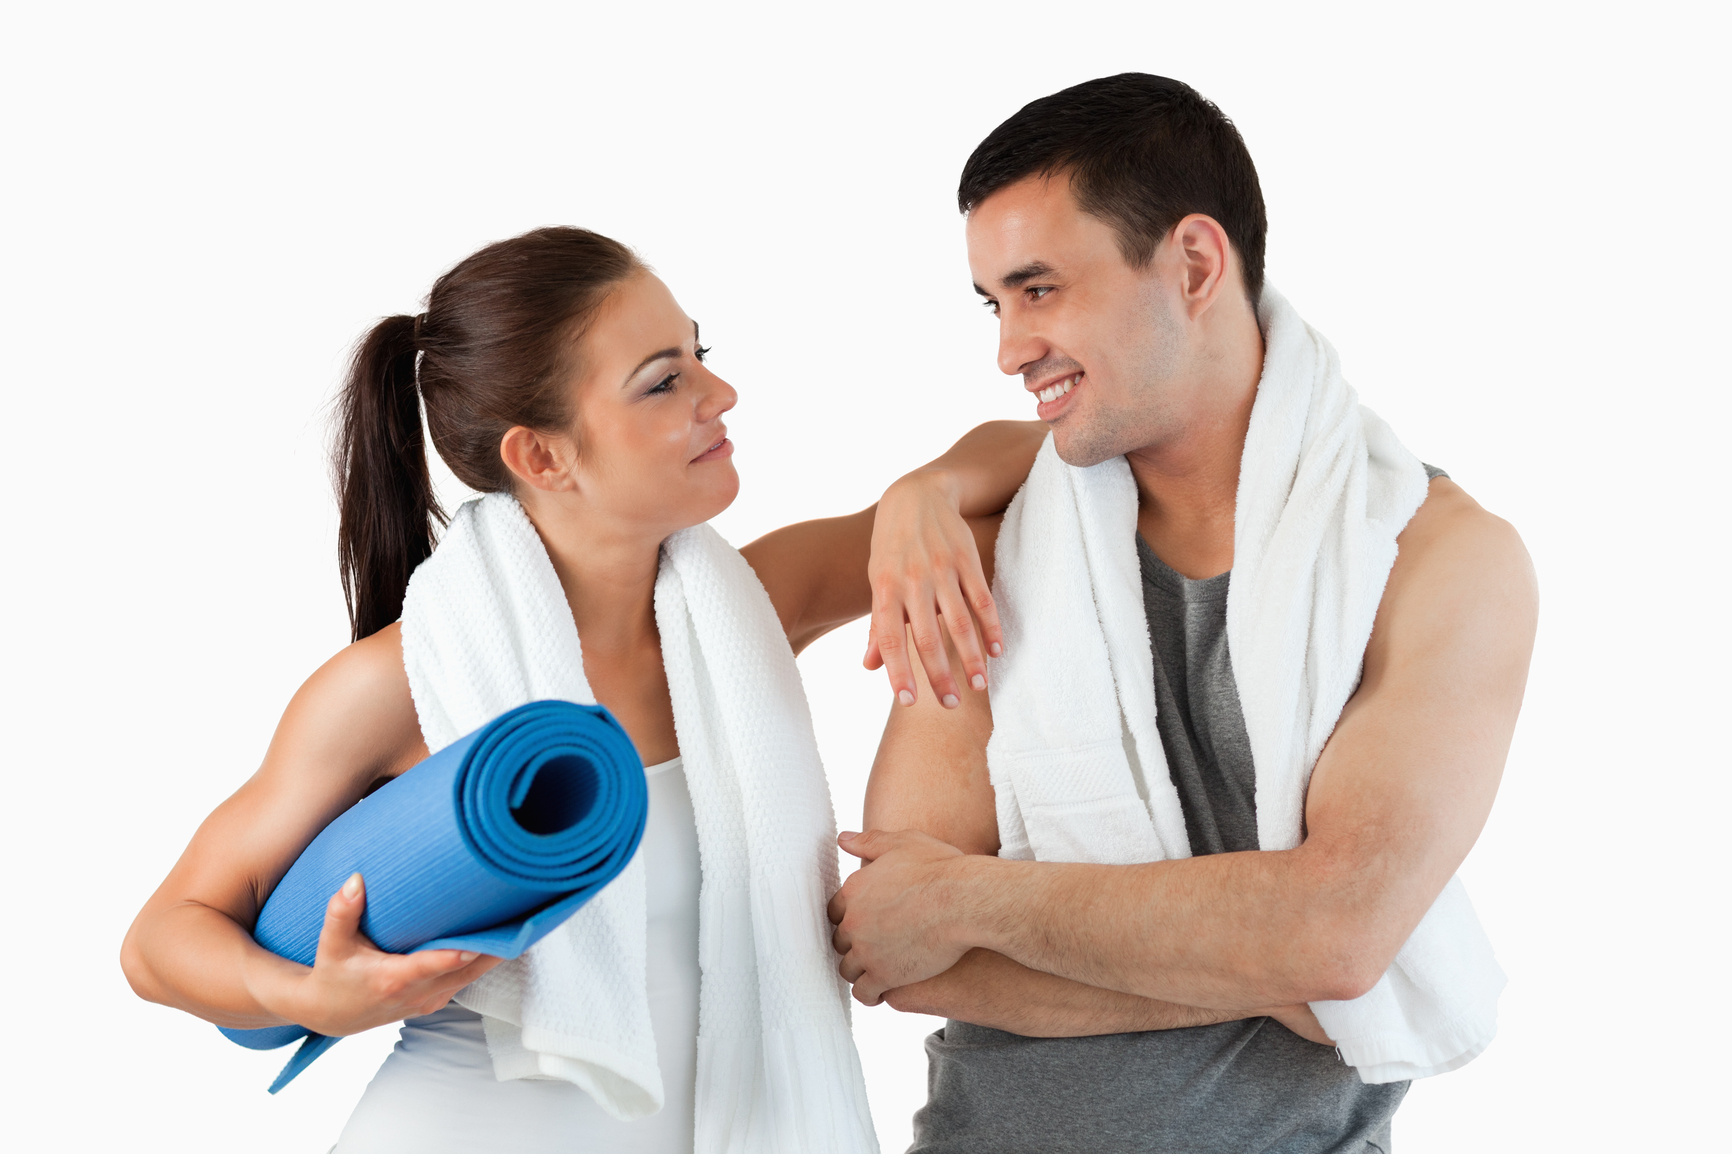 Healthy couple going to practice yoga against a white background